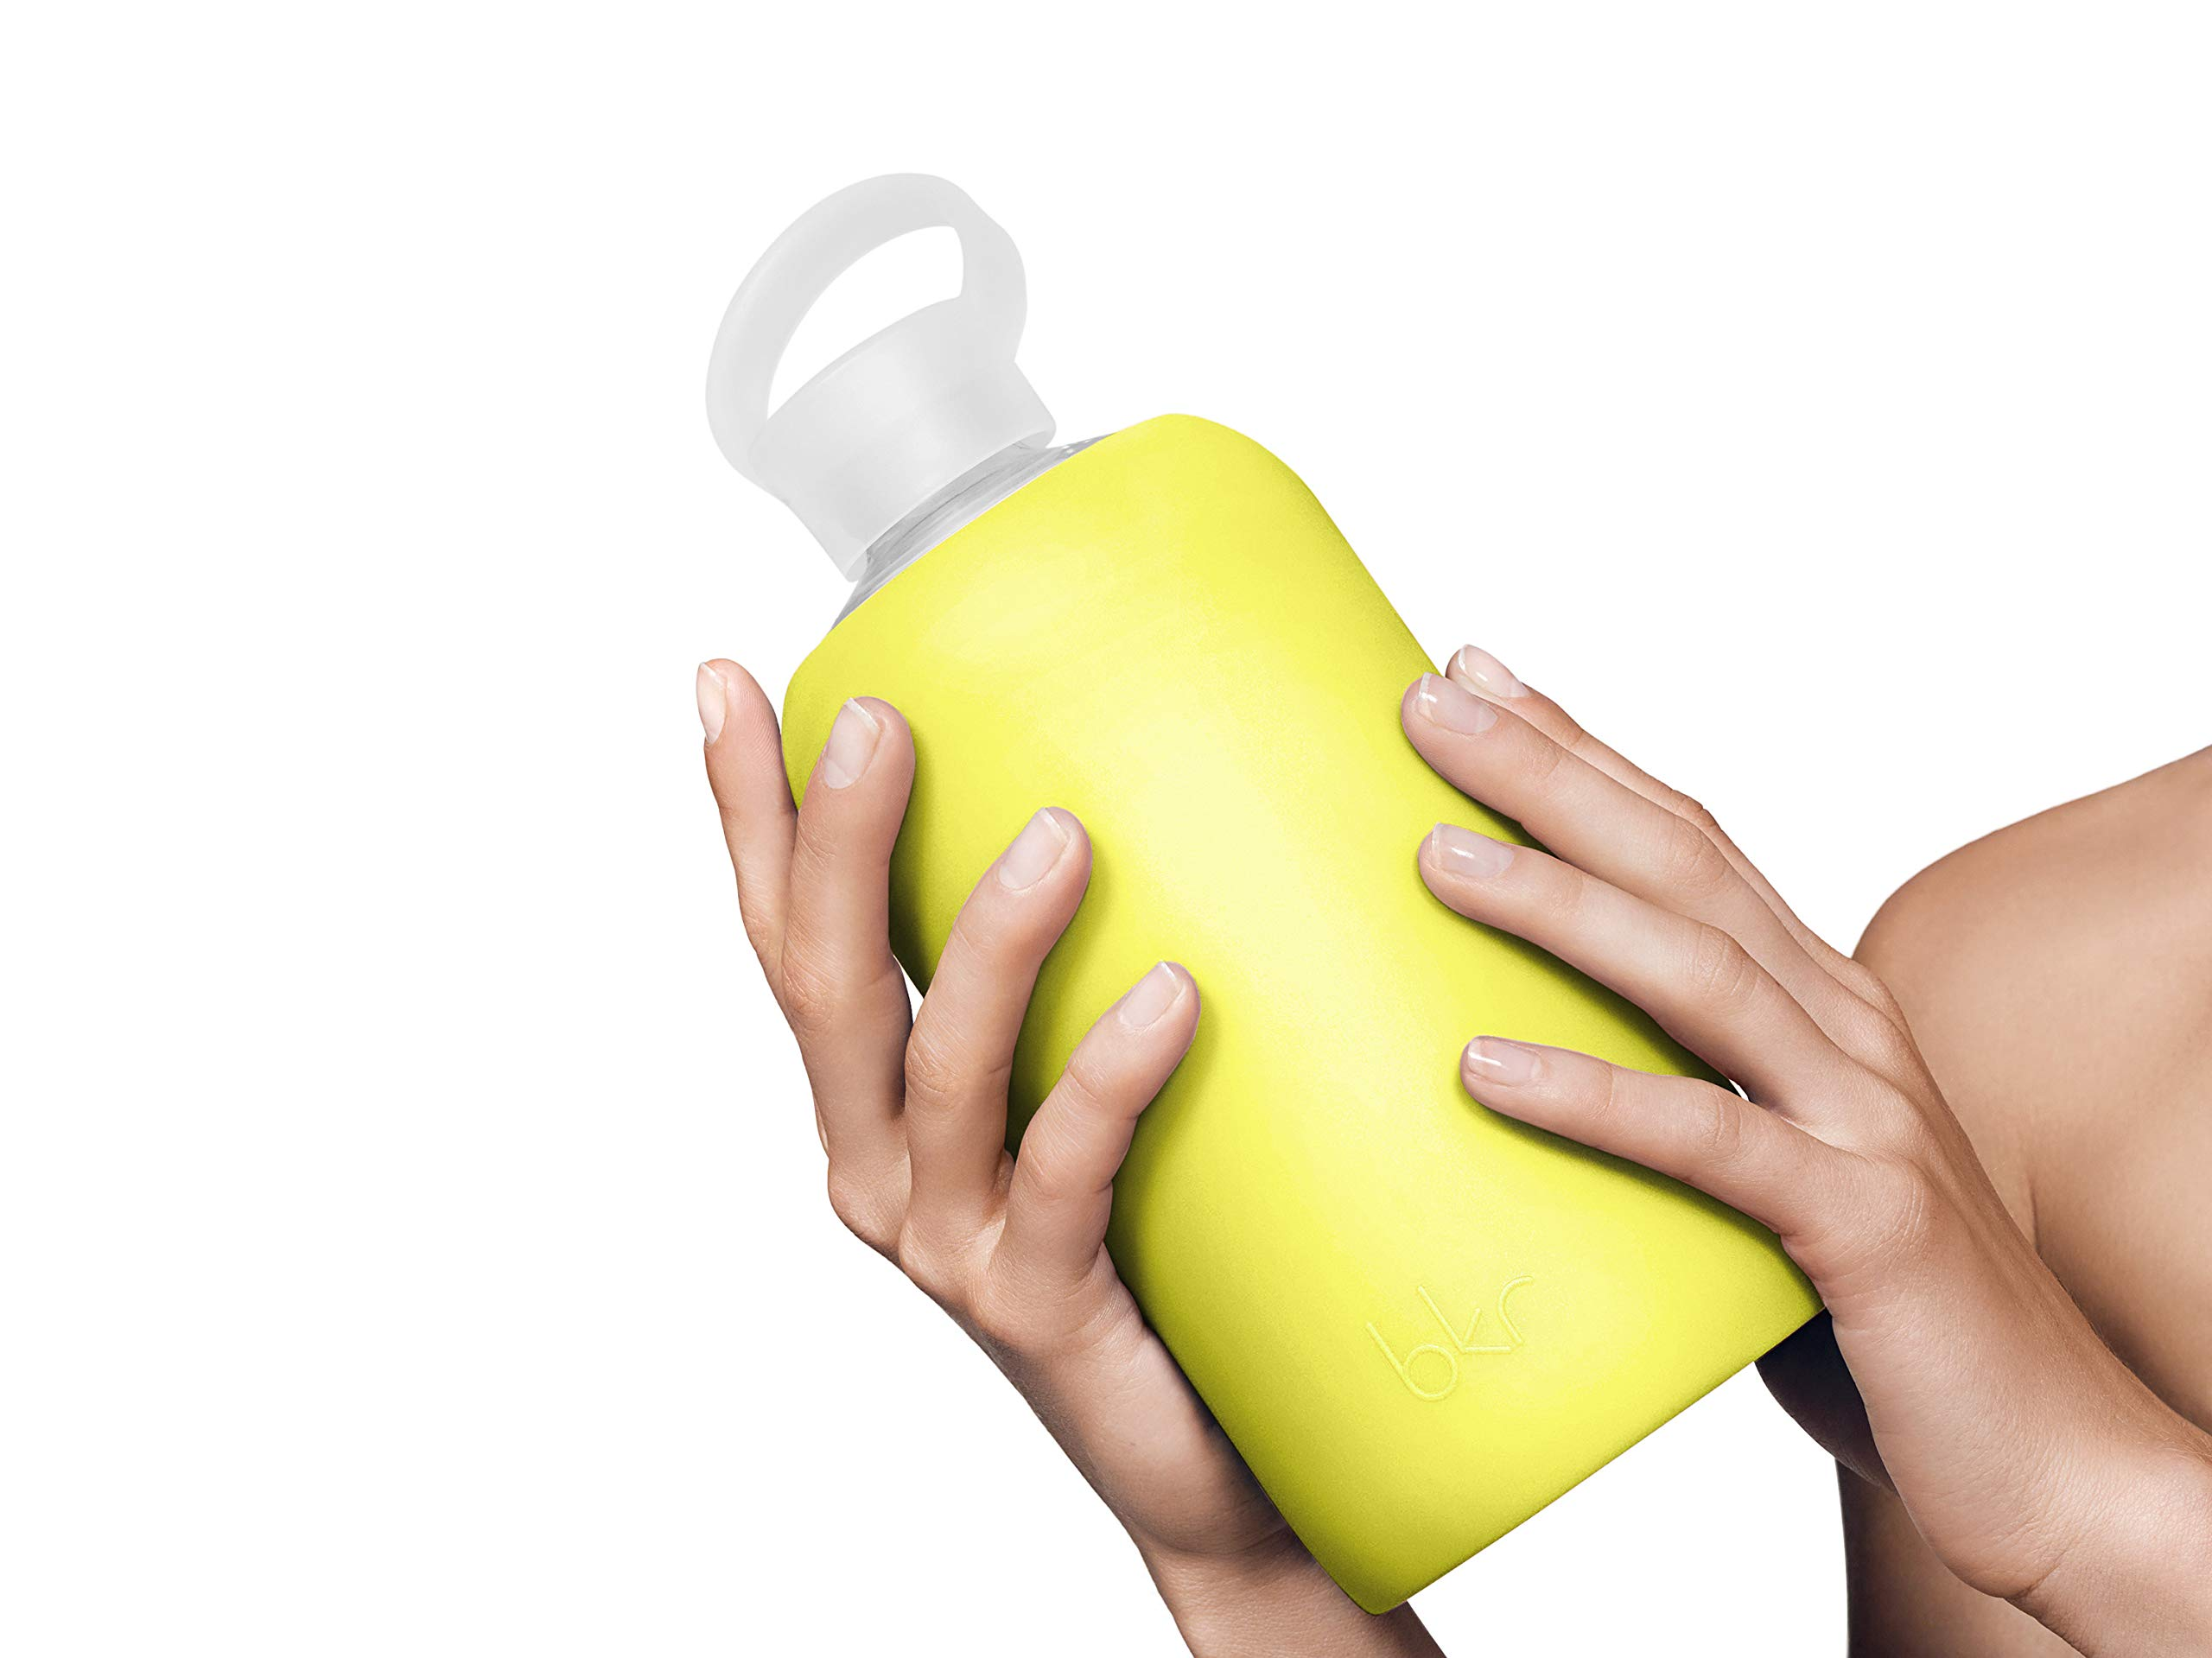 bkr Gigi Glass Water Bottle with Smooth Silicone Sleeve for Travel, Narrow Mouth, BPA-Free & Dishwasher Safe, Opaque Lime Yellow, 1 Count by bkr (Image #6)